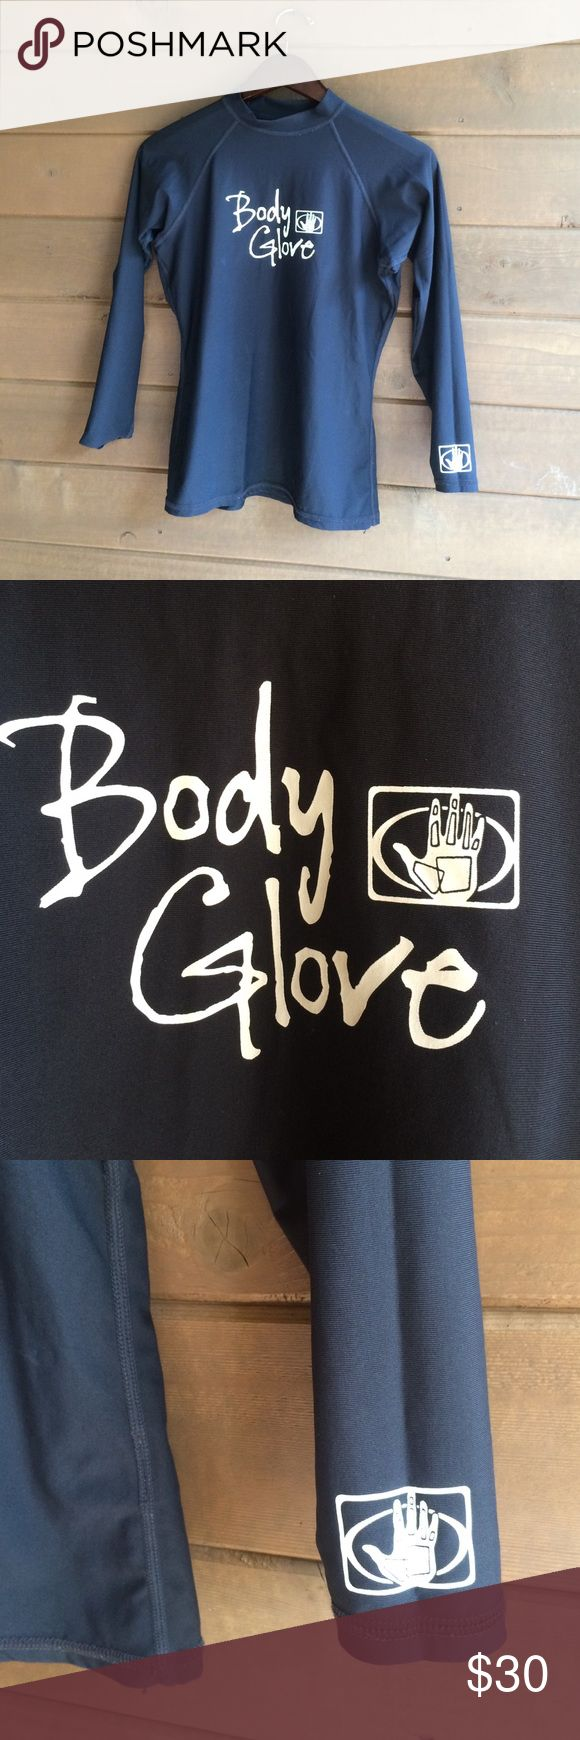 Body Glove rash guard Body Glove rash guard. Great for water sports. Size L. Great sun protection in the water. Color: black. Body Glove Tops